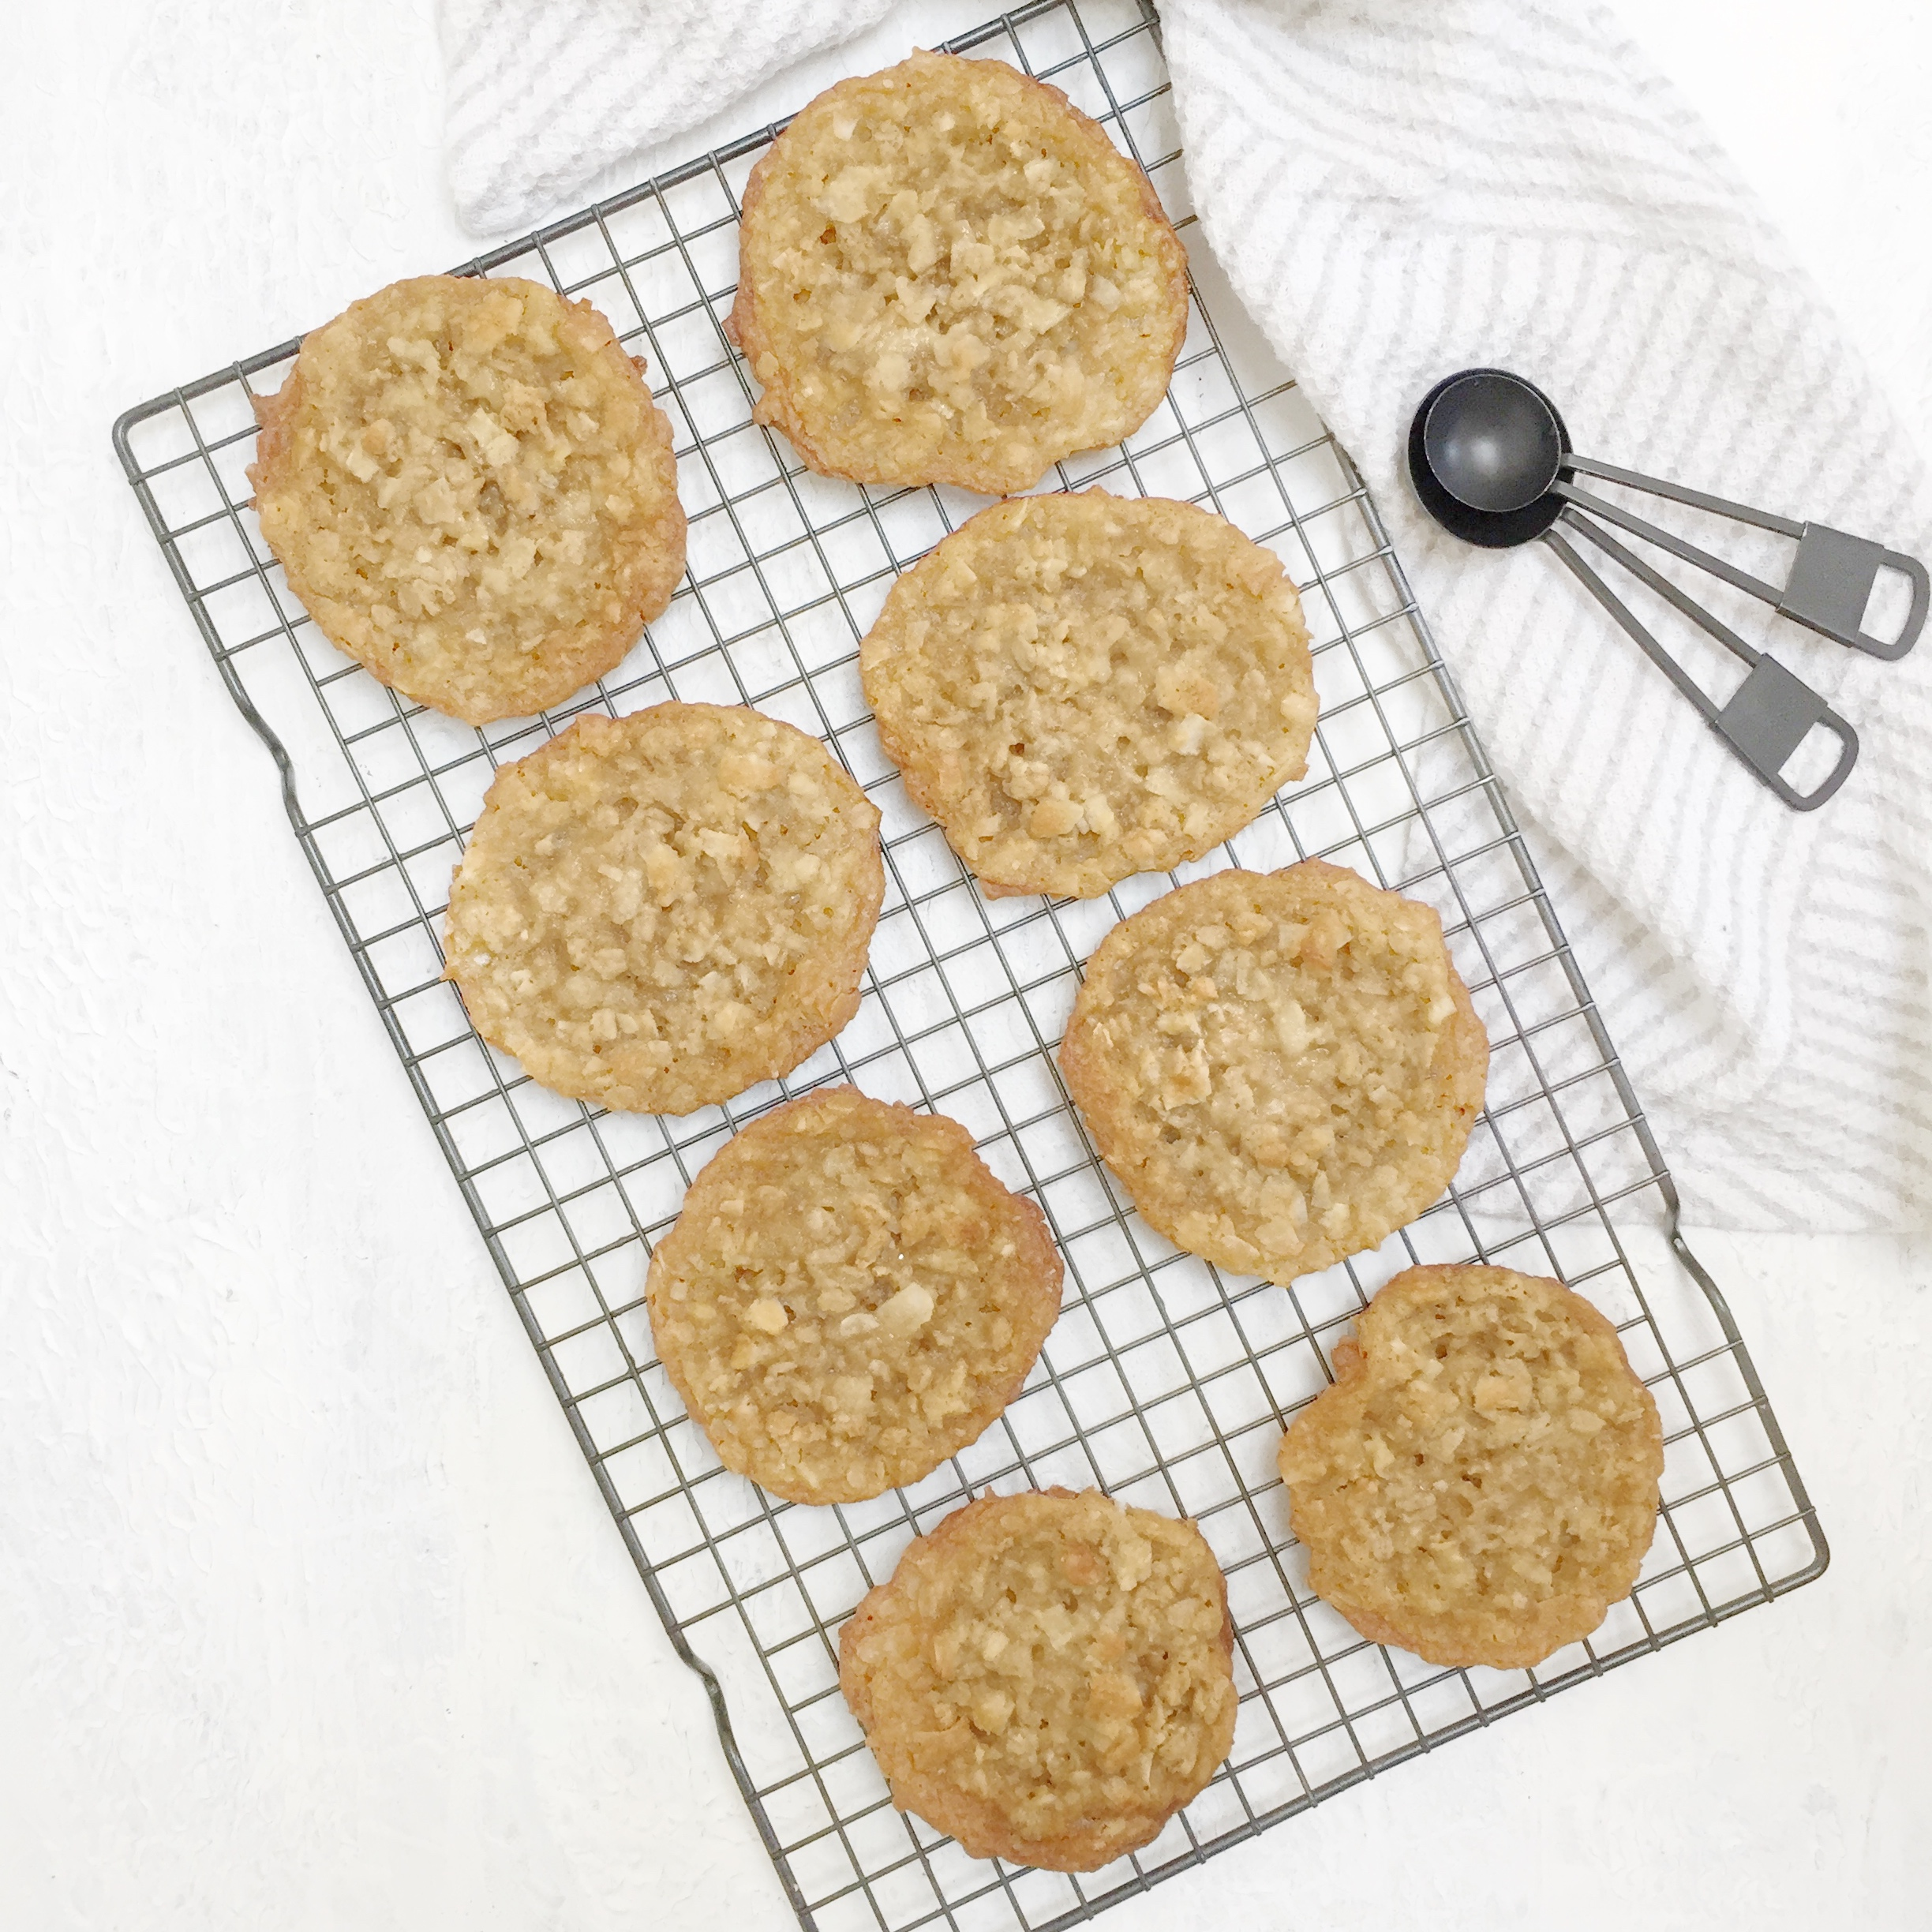 - prep time 15 minutescook time 10 minutestotal time 45 minutesservings 24 cookies